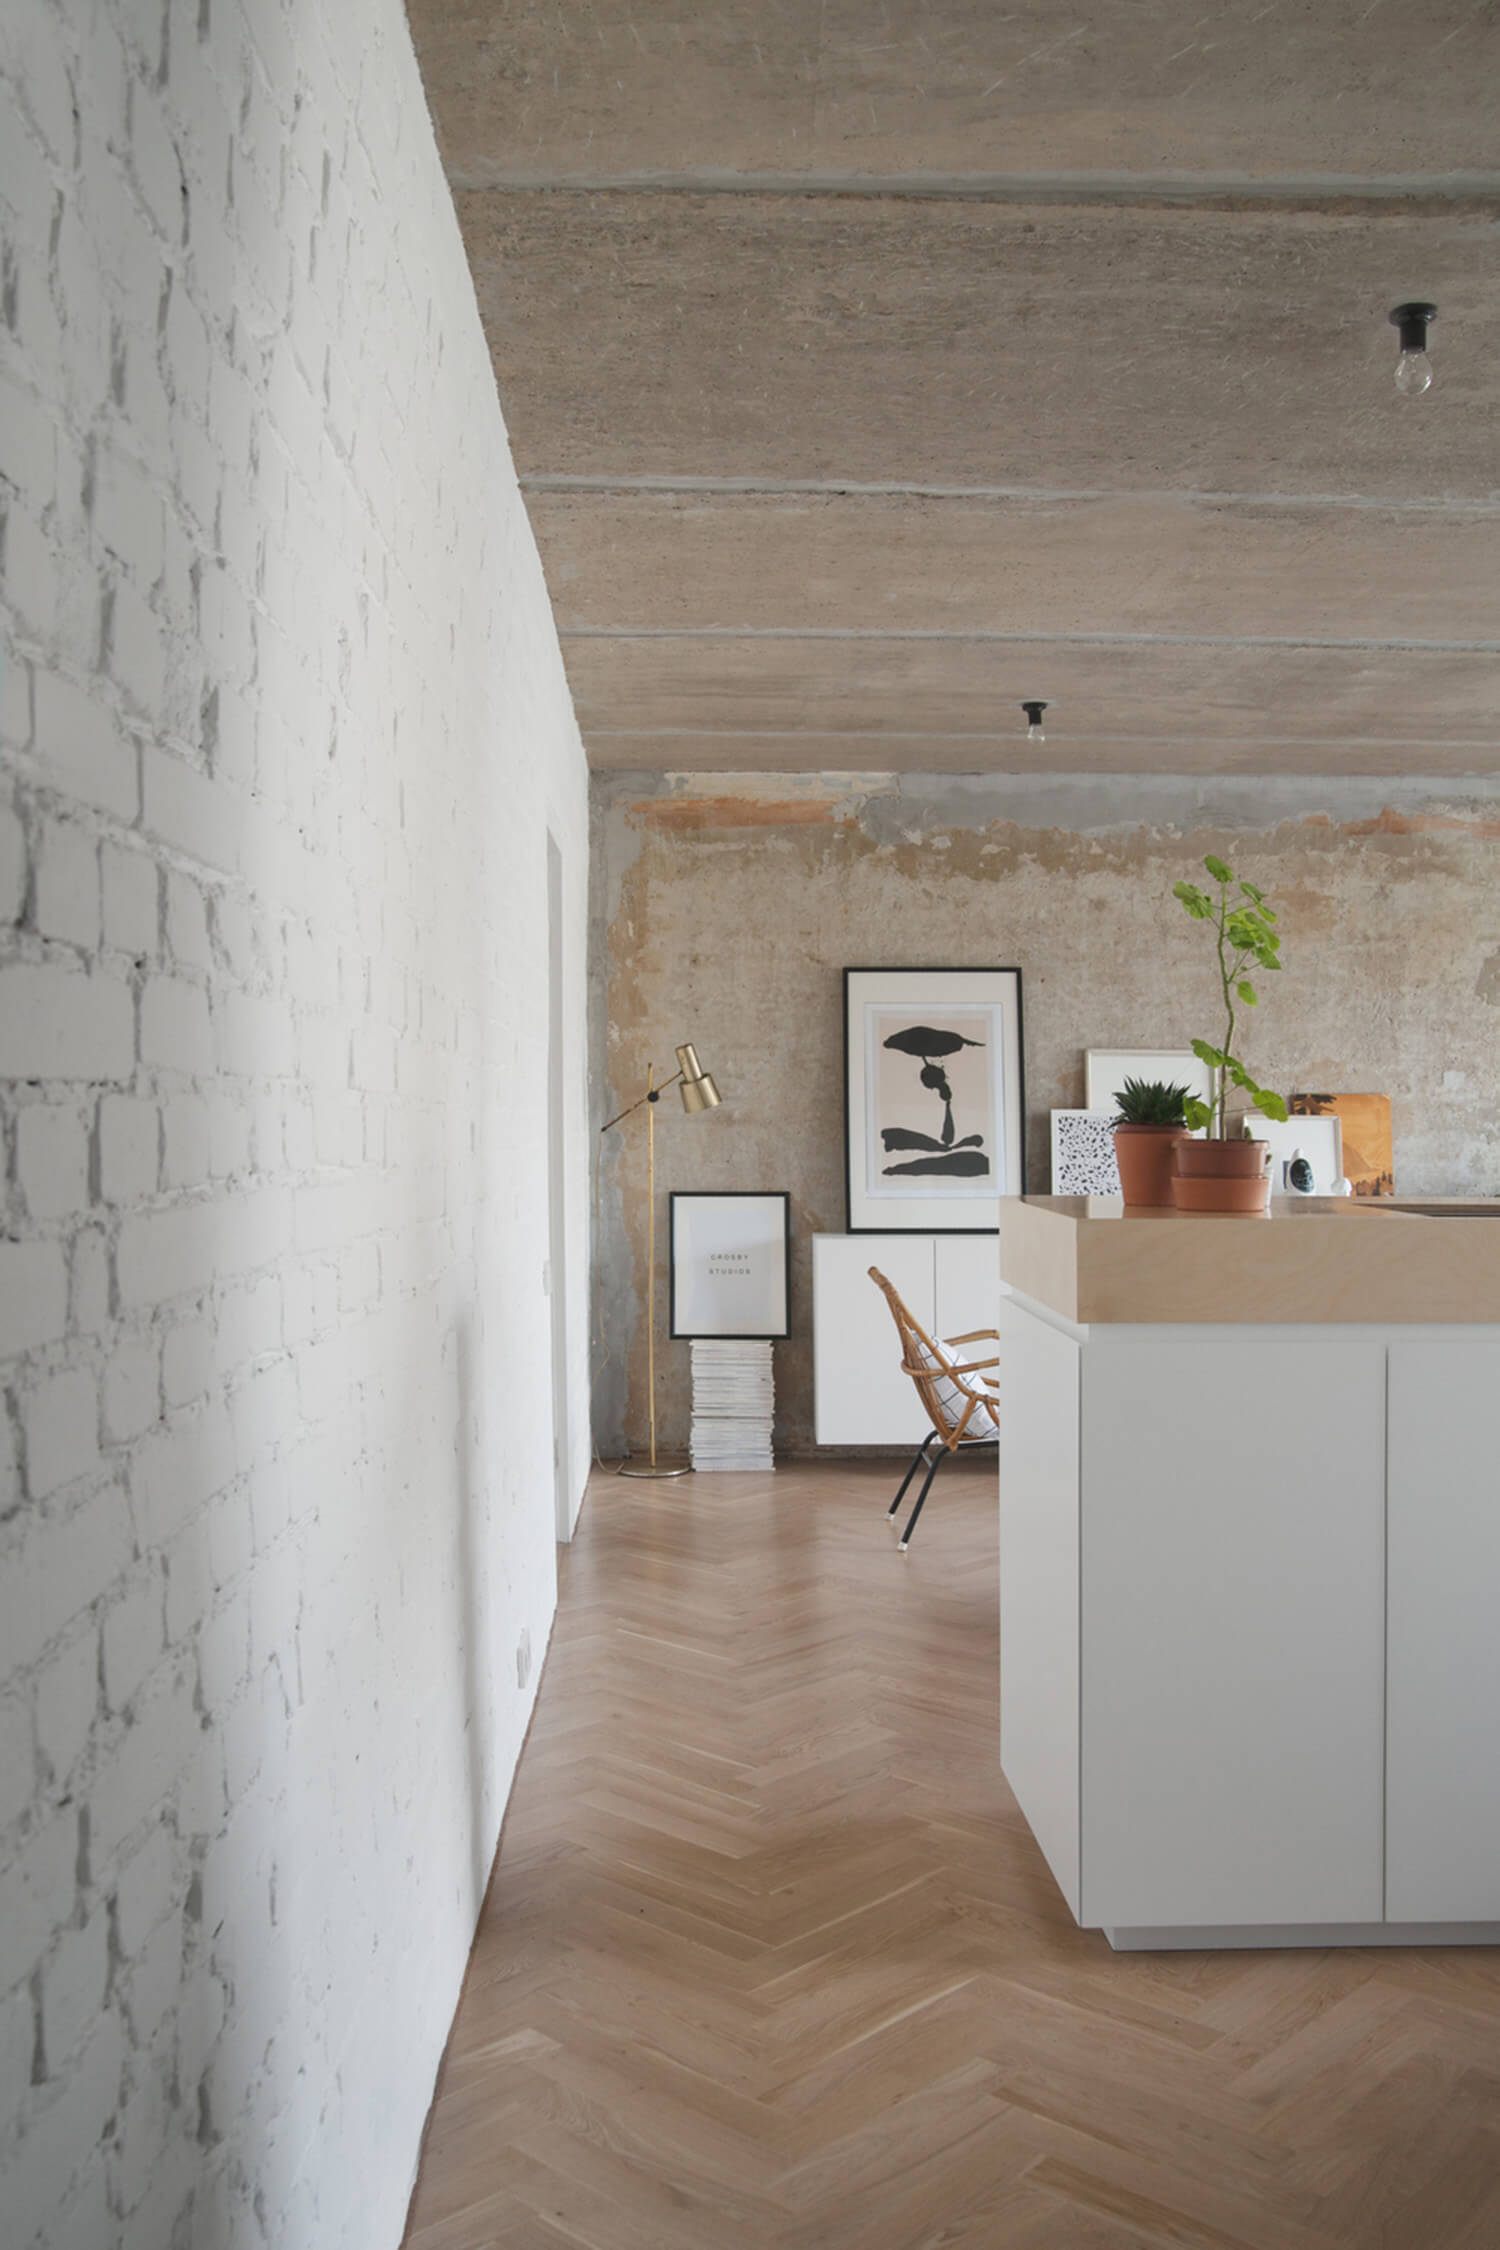 est-living-concrete-ceiling-apartment-crosby-studios.07